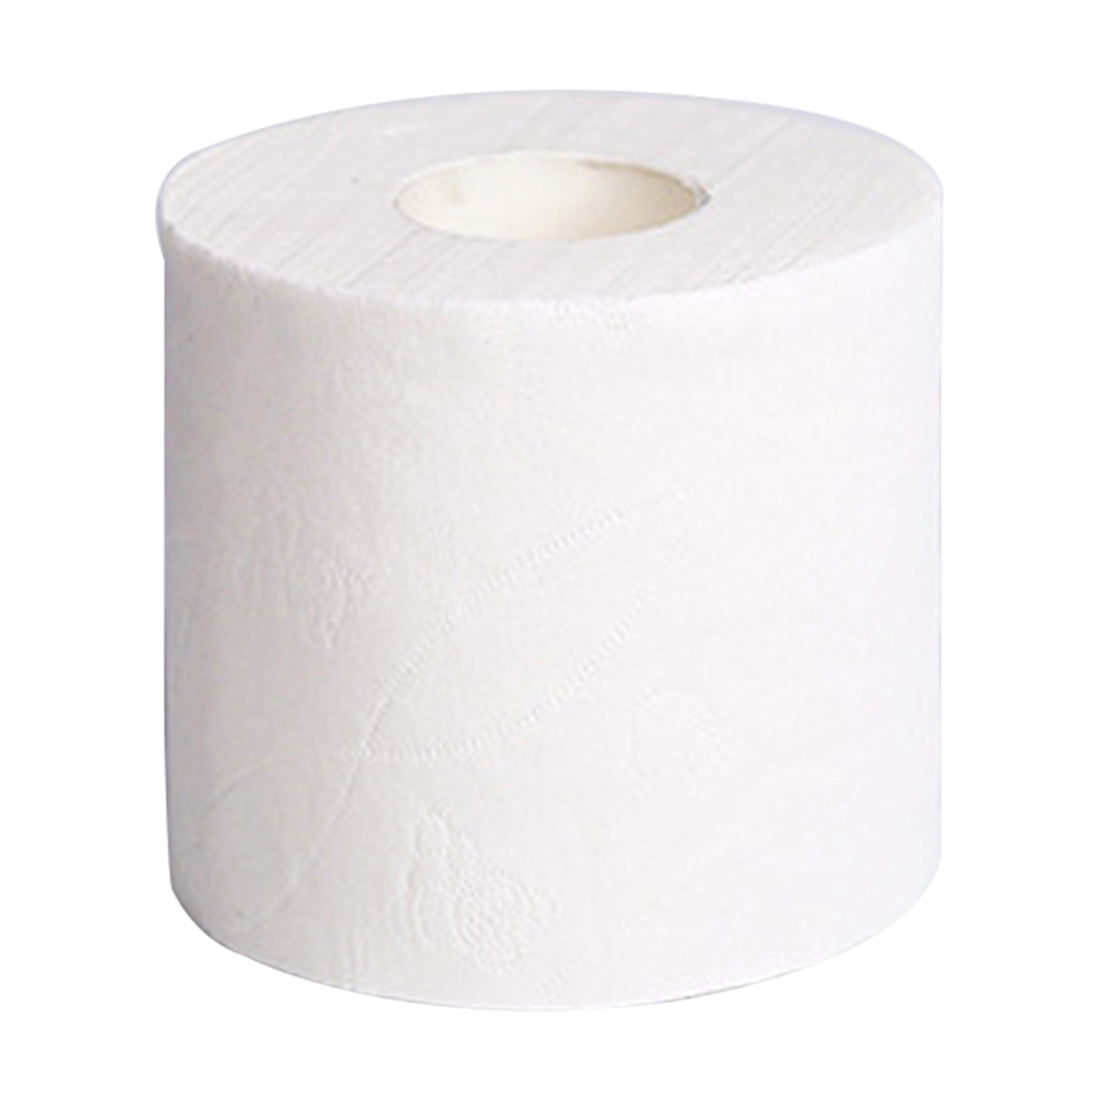 10 Rolls Toilet Tissue Home Bath Toilet Roll Three Layer Soft Toilet Paper Skin-friendly Paper Towels Car Accessories Interior